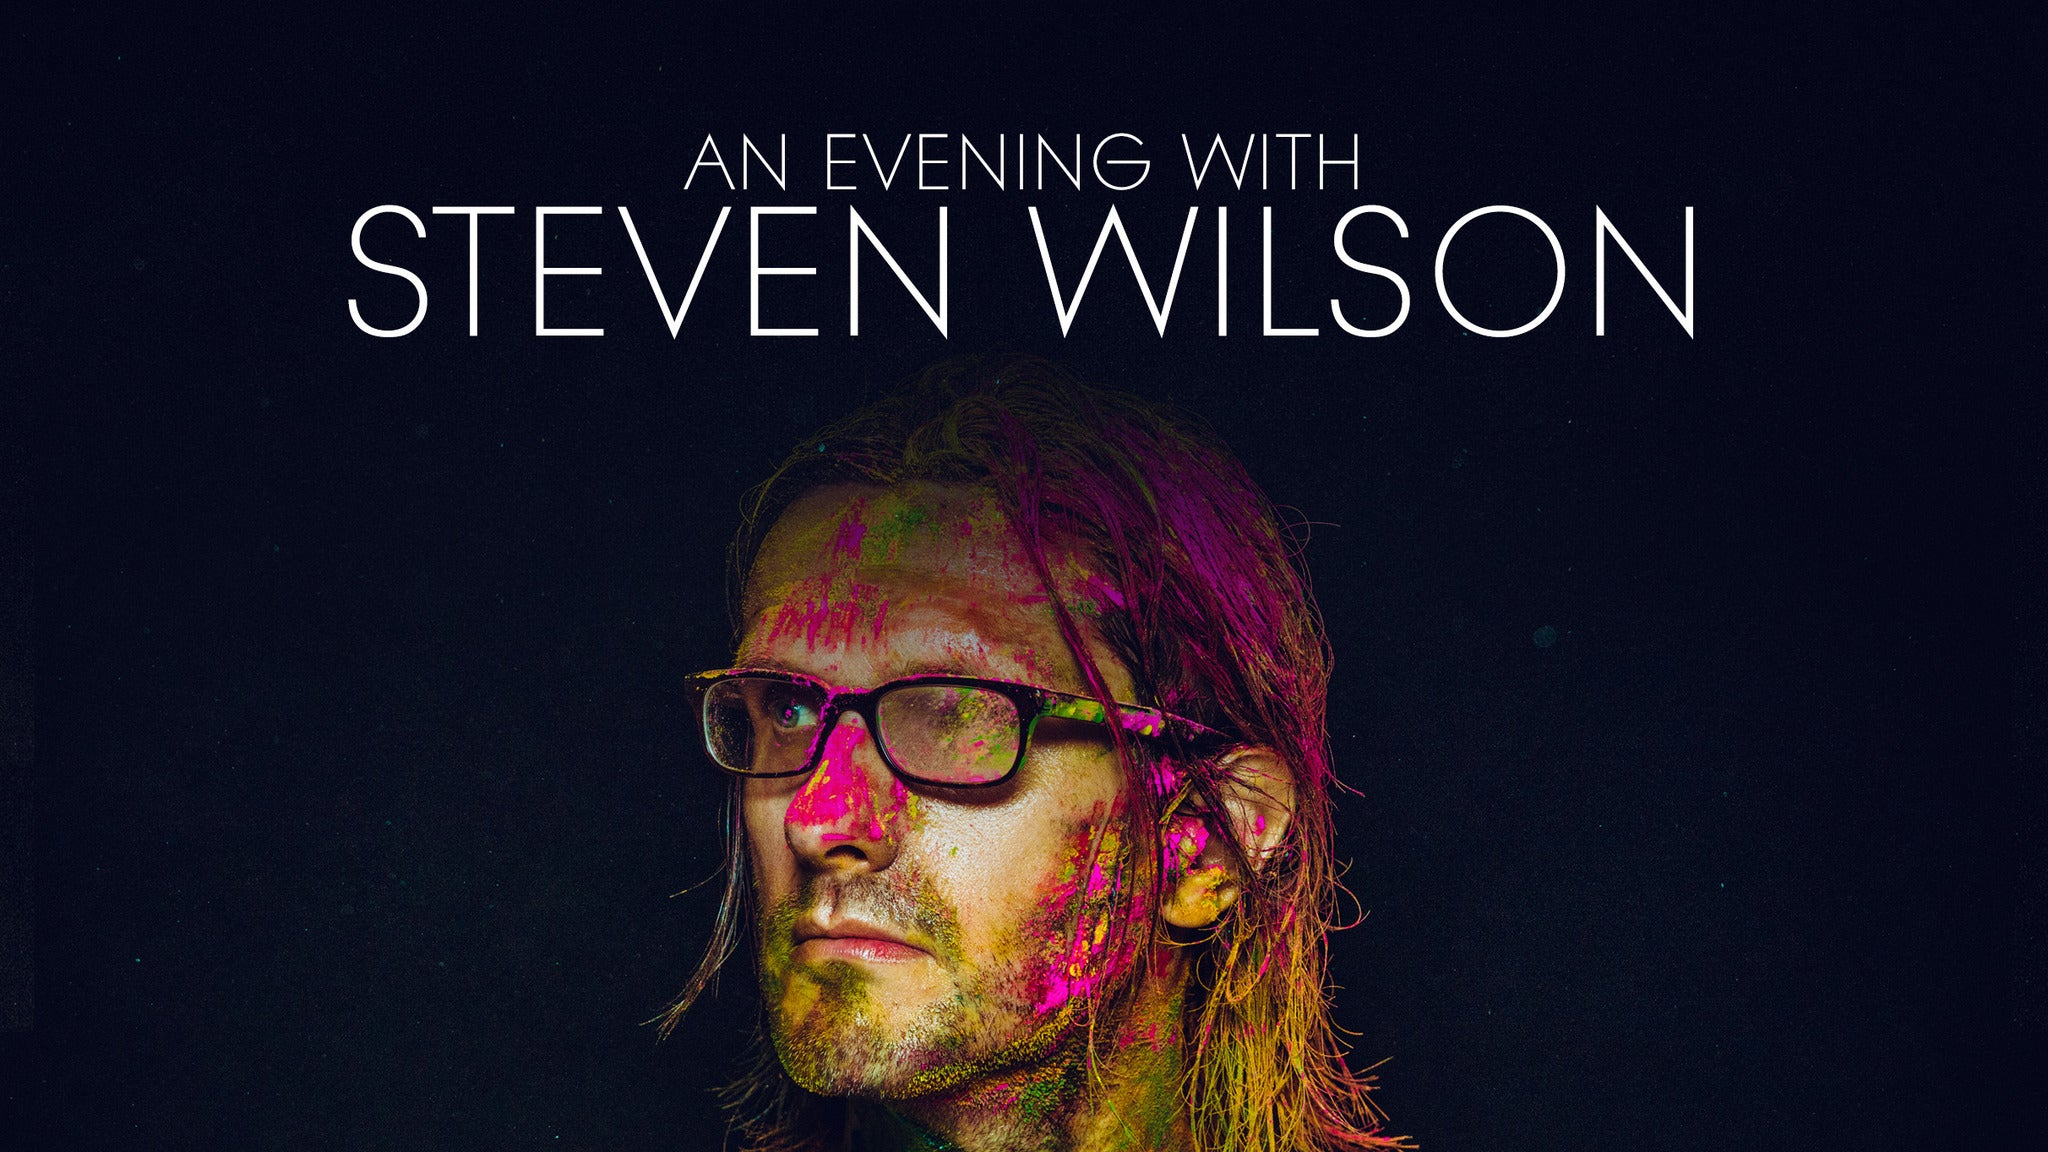 An Evening with Steven Wilson at The Fillmore